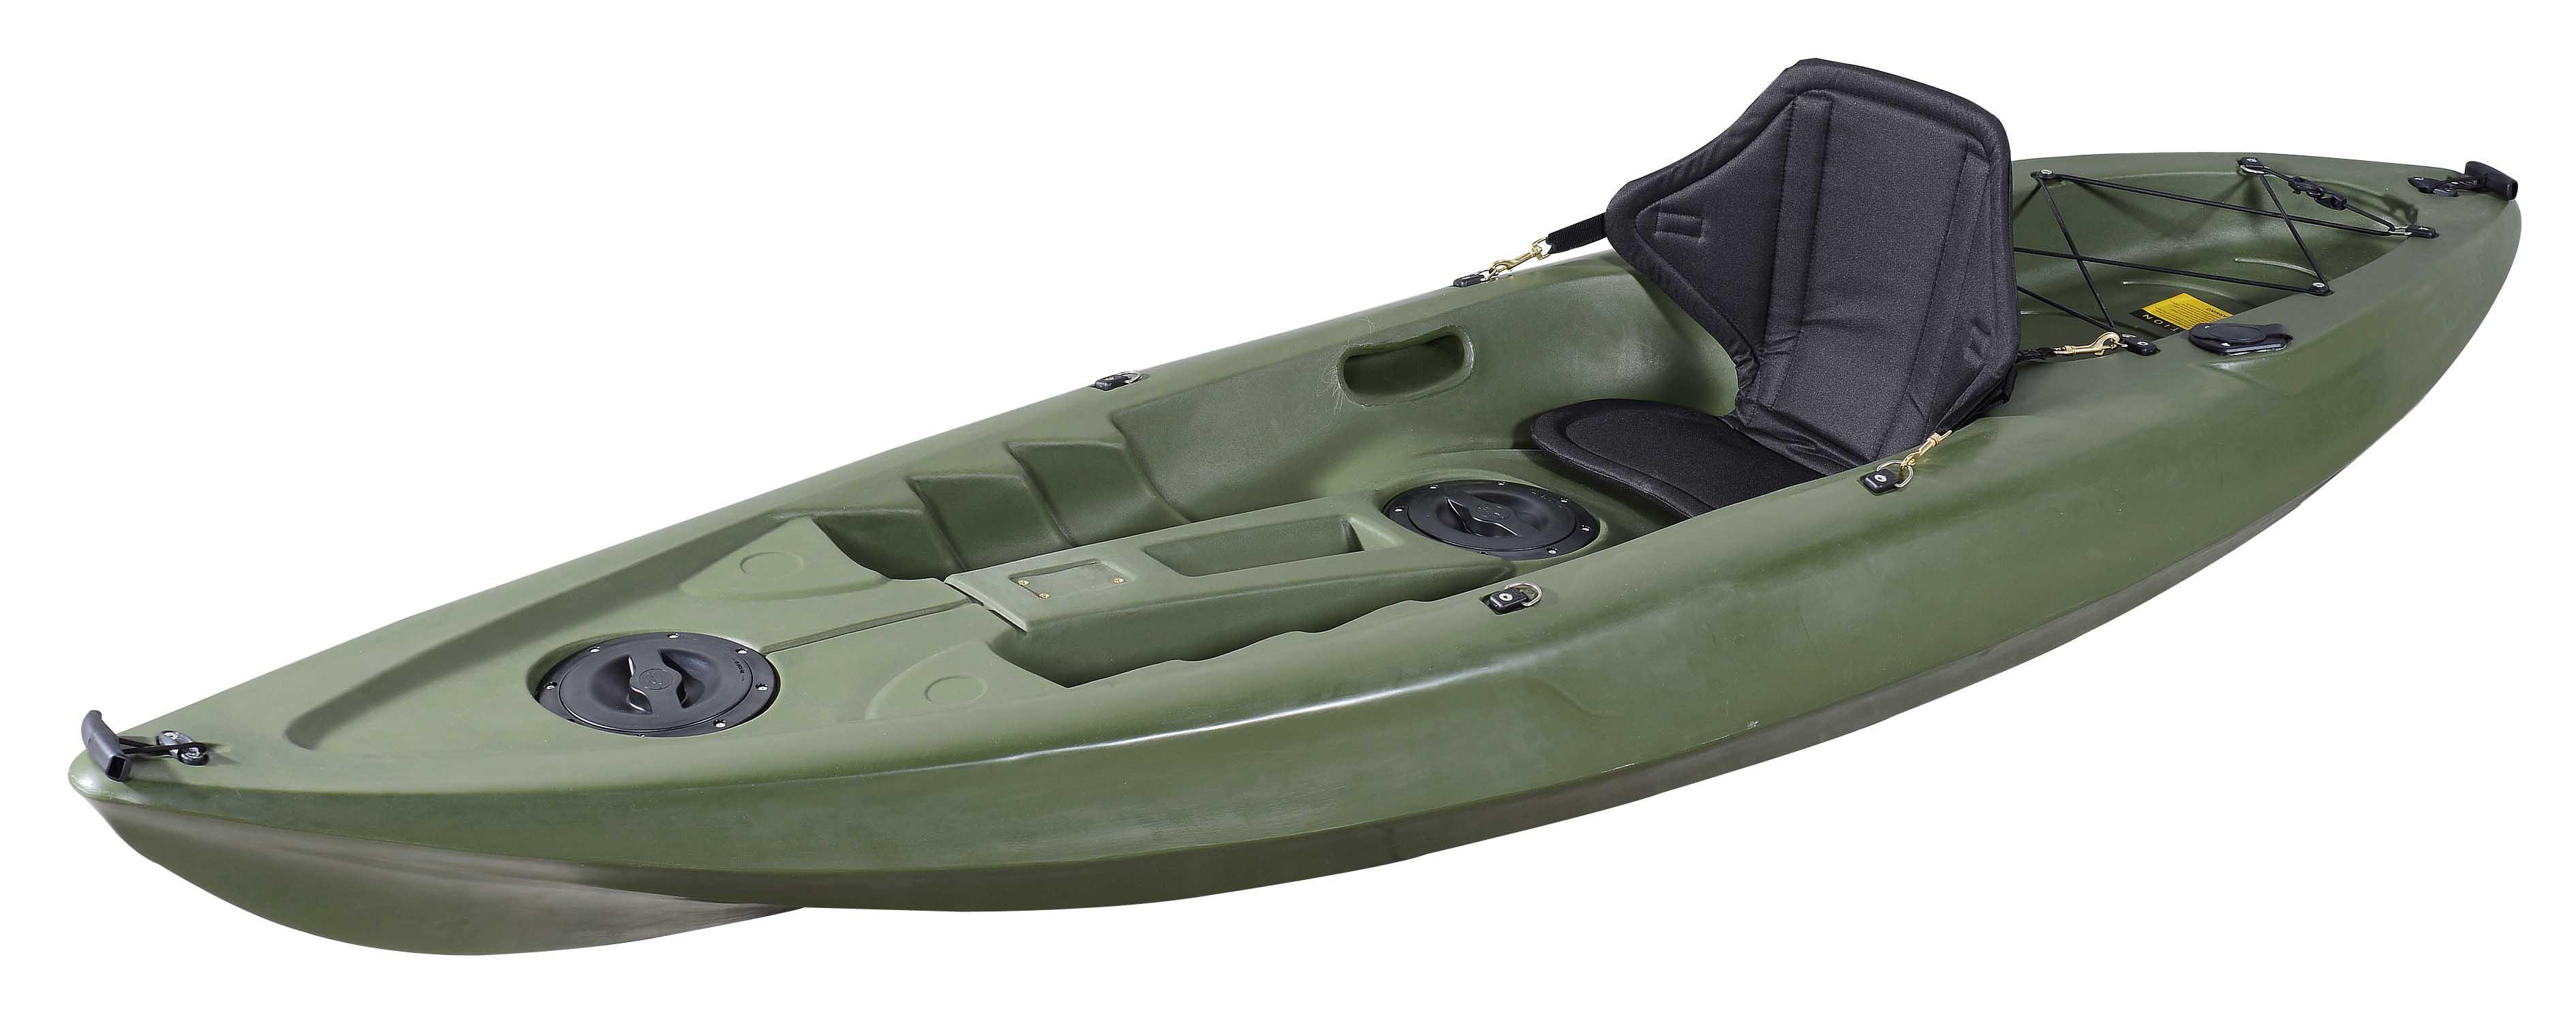 Tis friday so what plans do you have for this weekend for Best sit on top fishing kayak